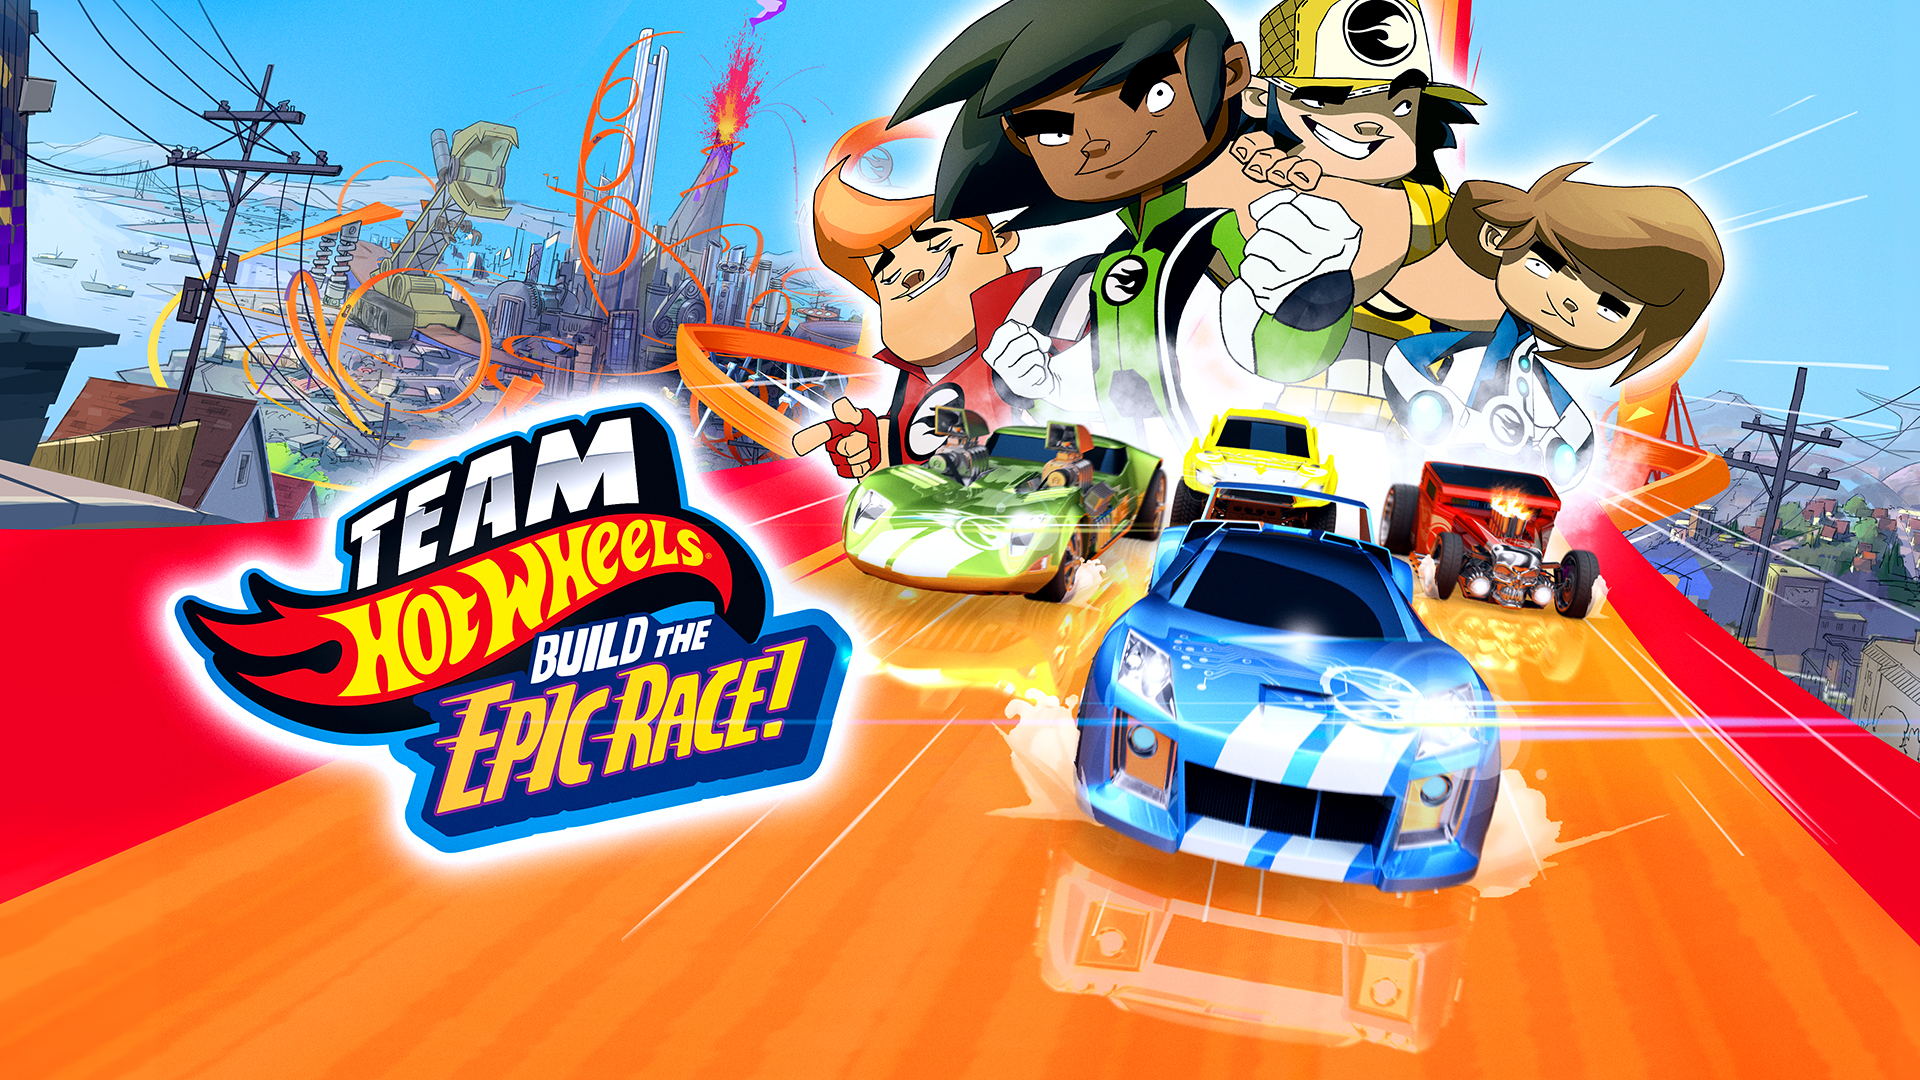 Team Hot Wheels, Build the Epic Race